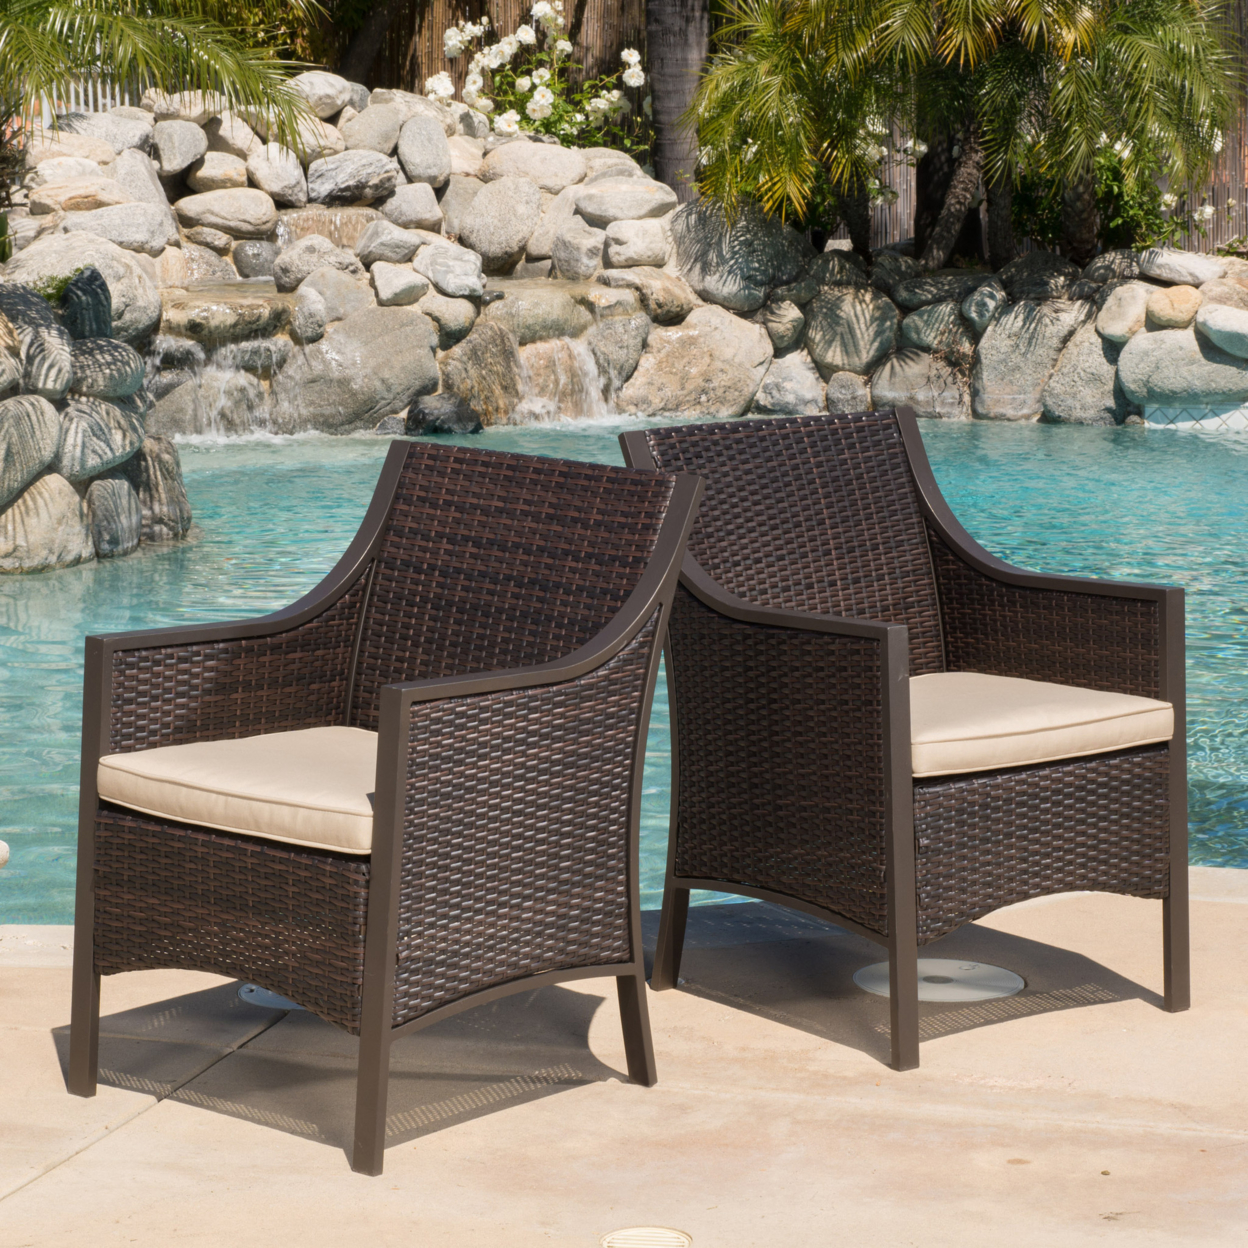 Orchard Outdoor Brown Wicker Dining Chair w/ Cushion (Set of 2) brown wicker outdoor lounge chair set with corner table sale